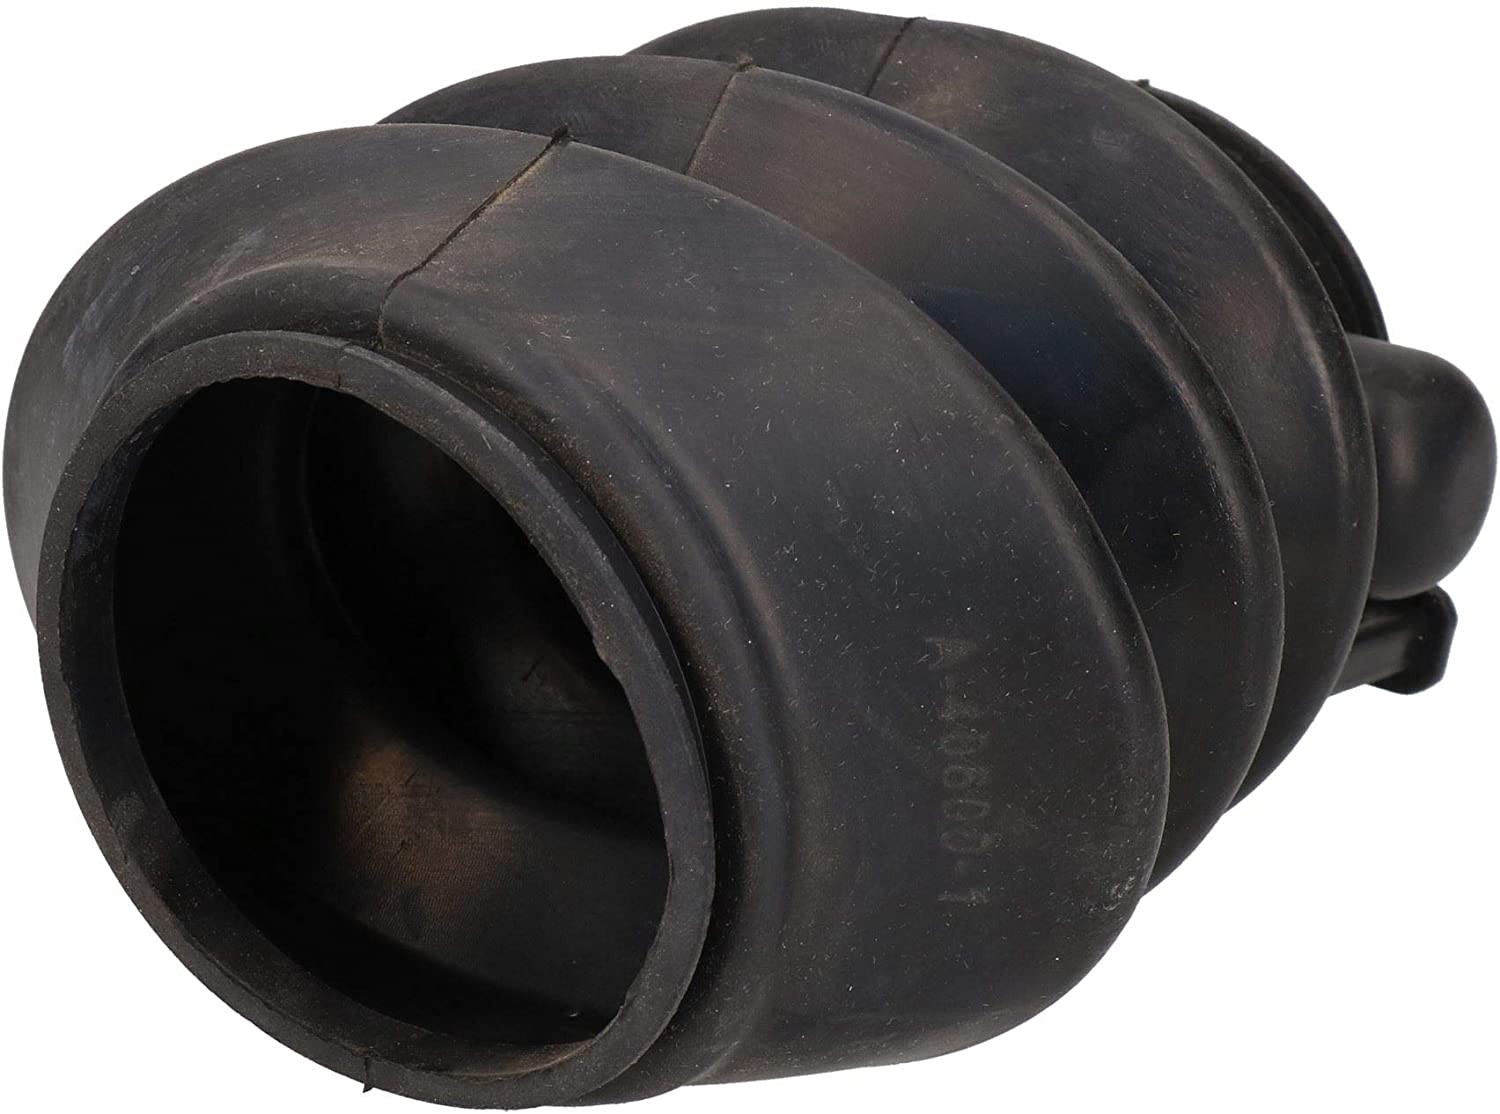 AB Tools-Maypole Trailer Hitch Coupling Gator Bellows Gaiter ALKO 161S 251S 950kg to 2600kg